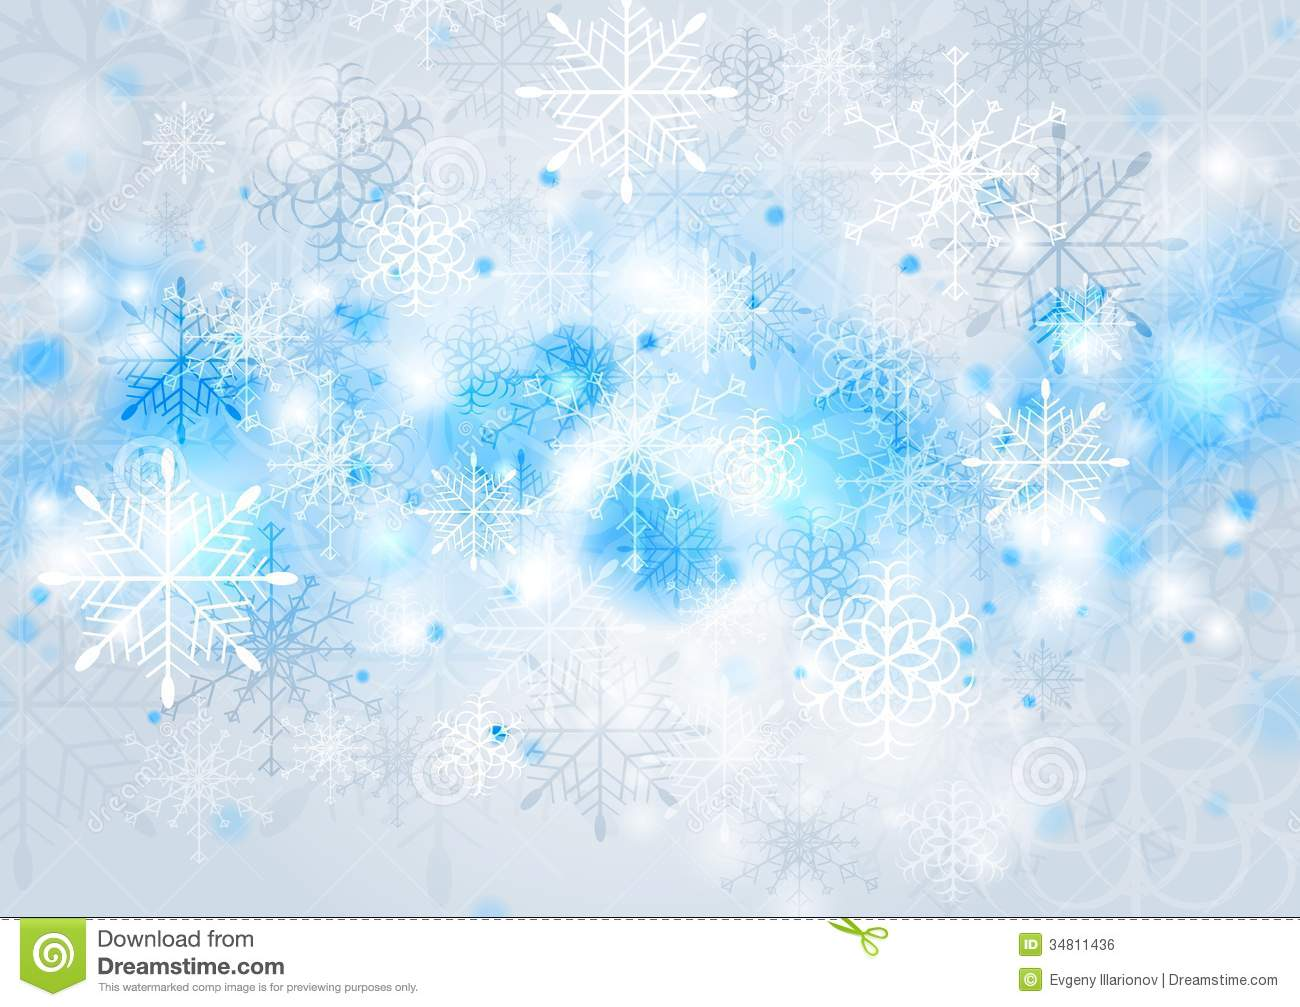 Vertical Holiday Backgrounds Free